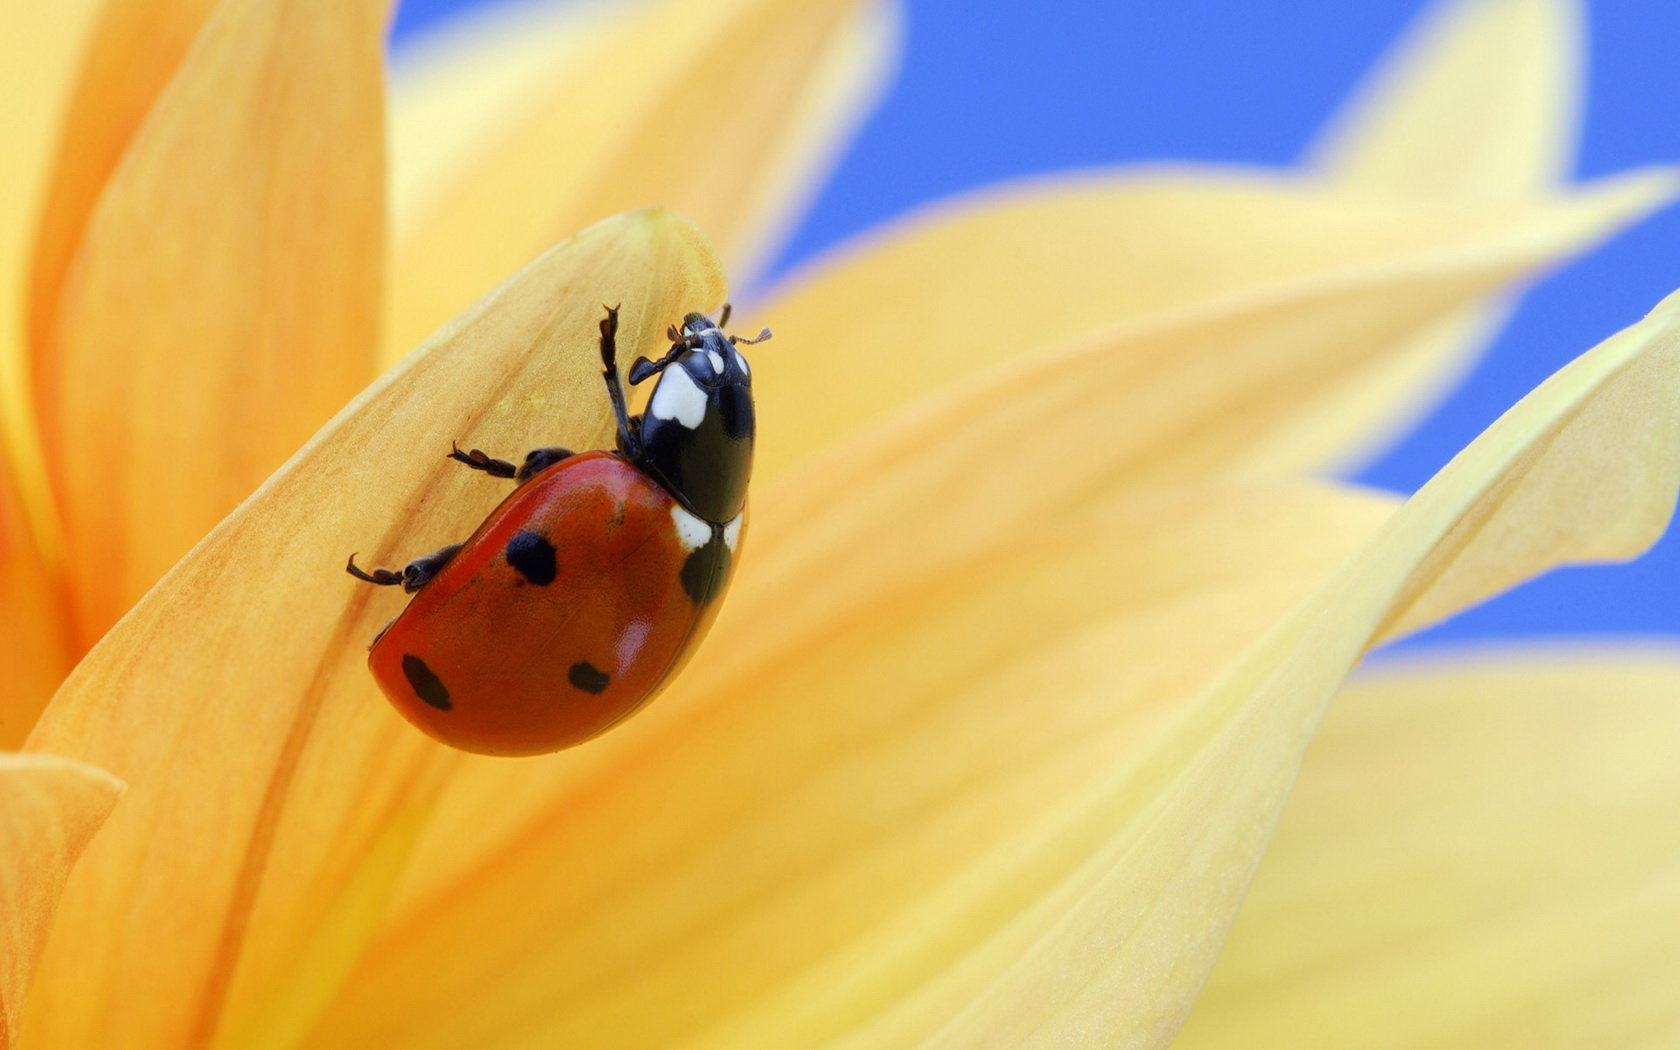 Download hd 1680x1050 Ladybug desktop wallpaper ID:270561 for free